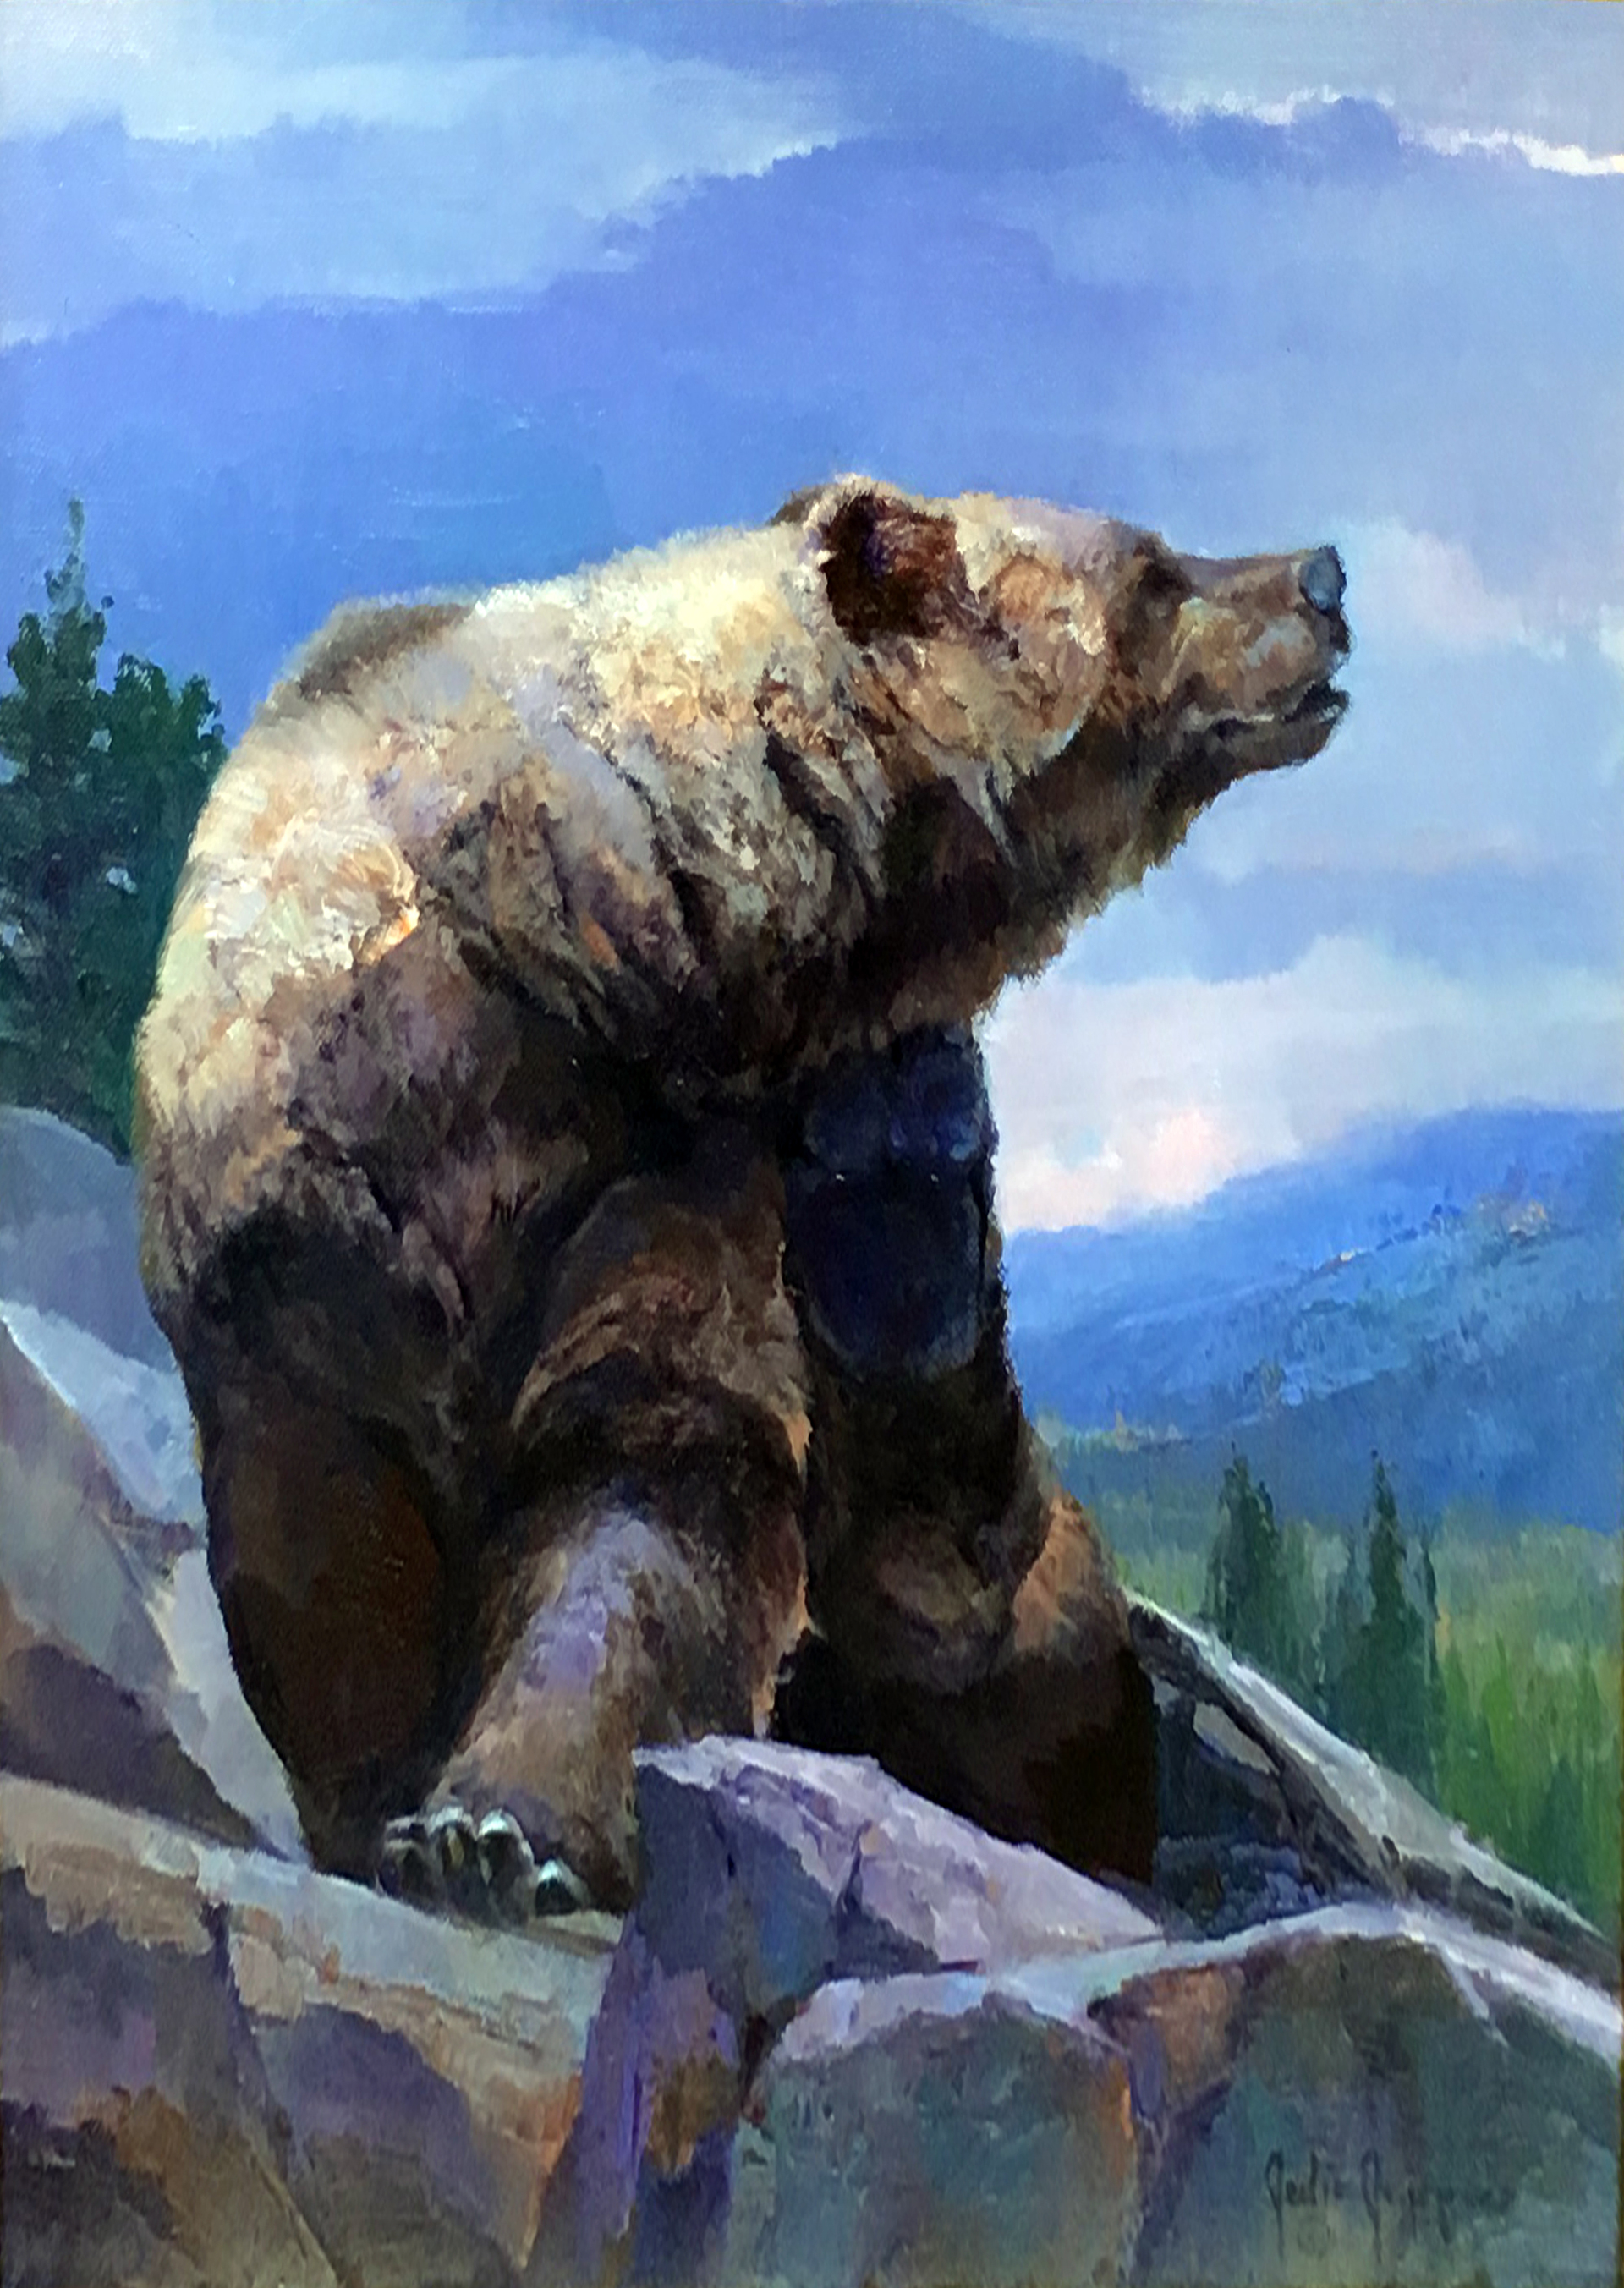 Seven Year Itch (Grizzly) by Julie Jeppsen